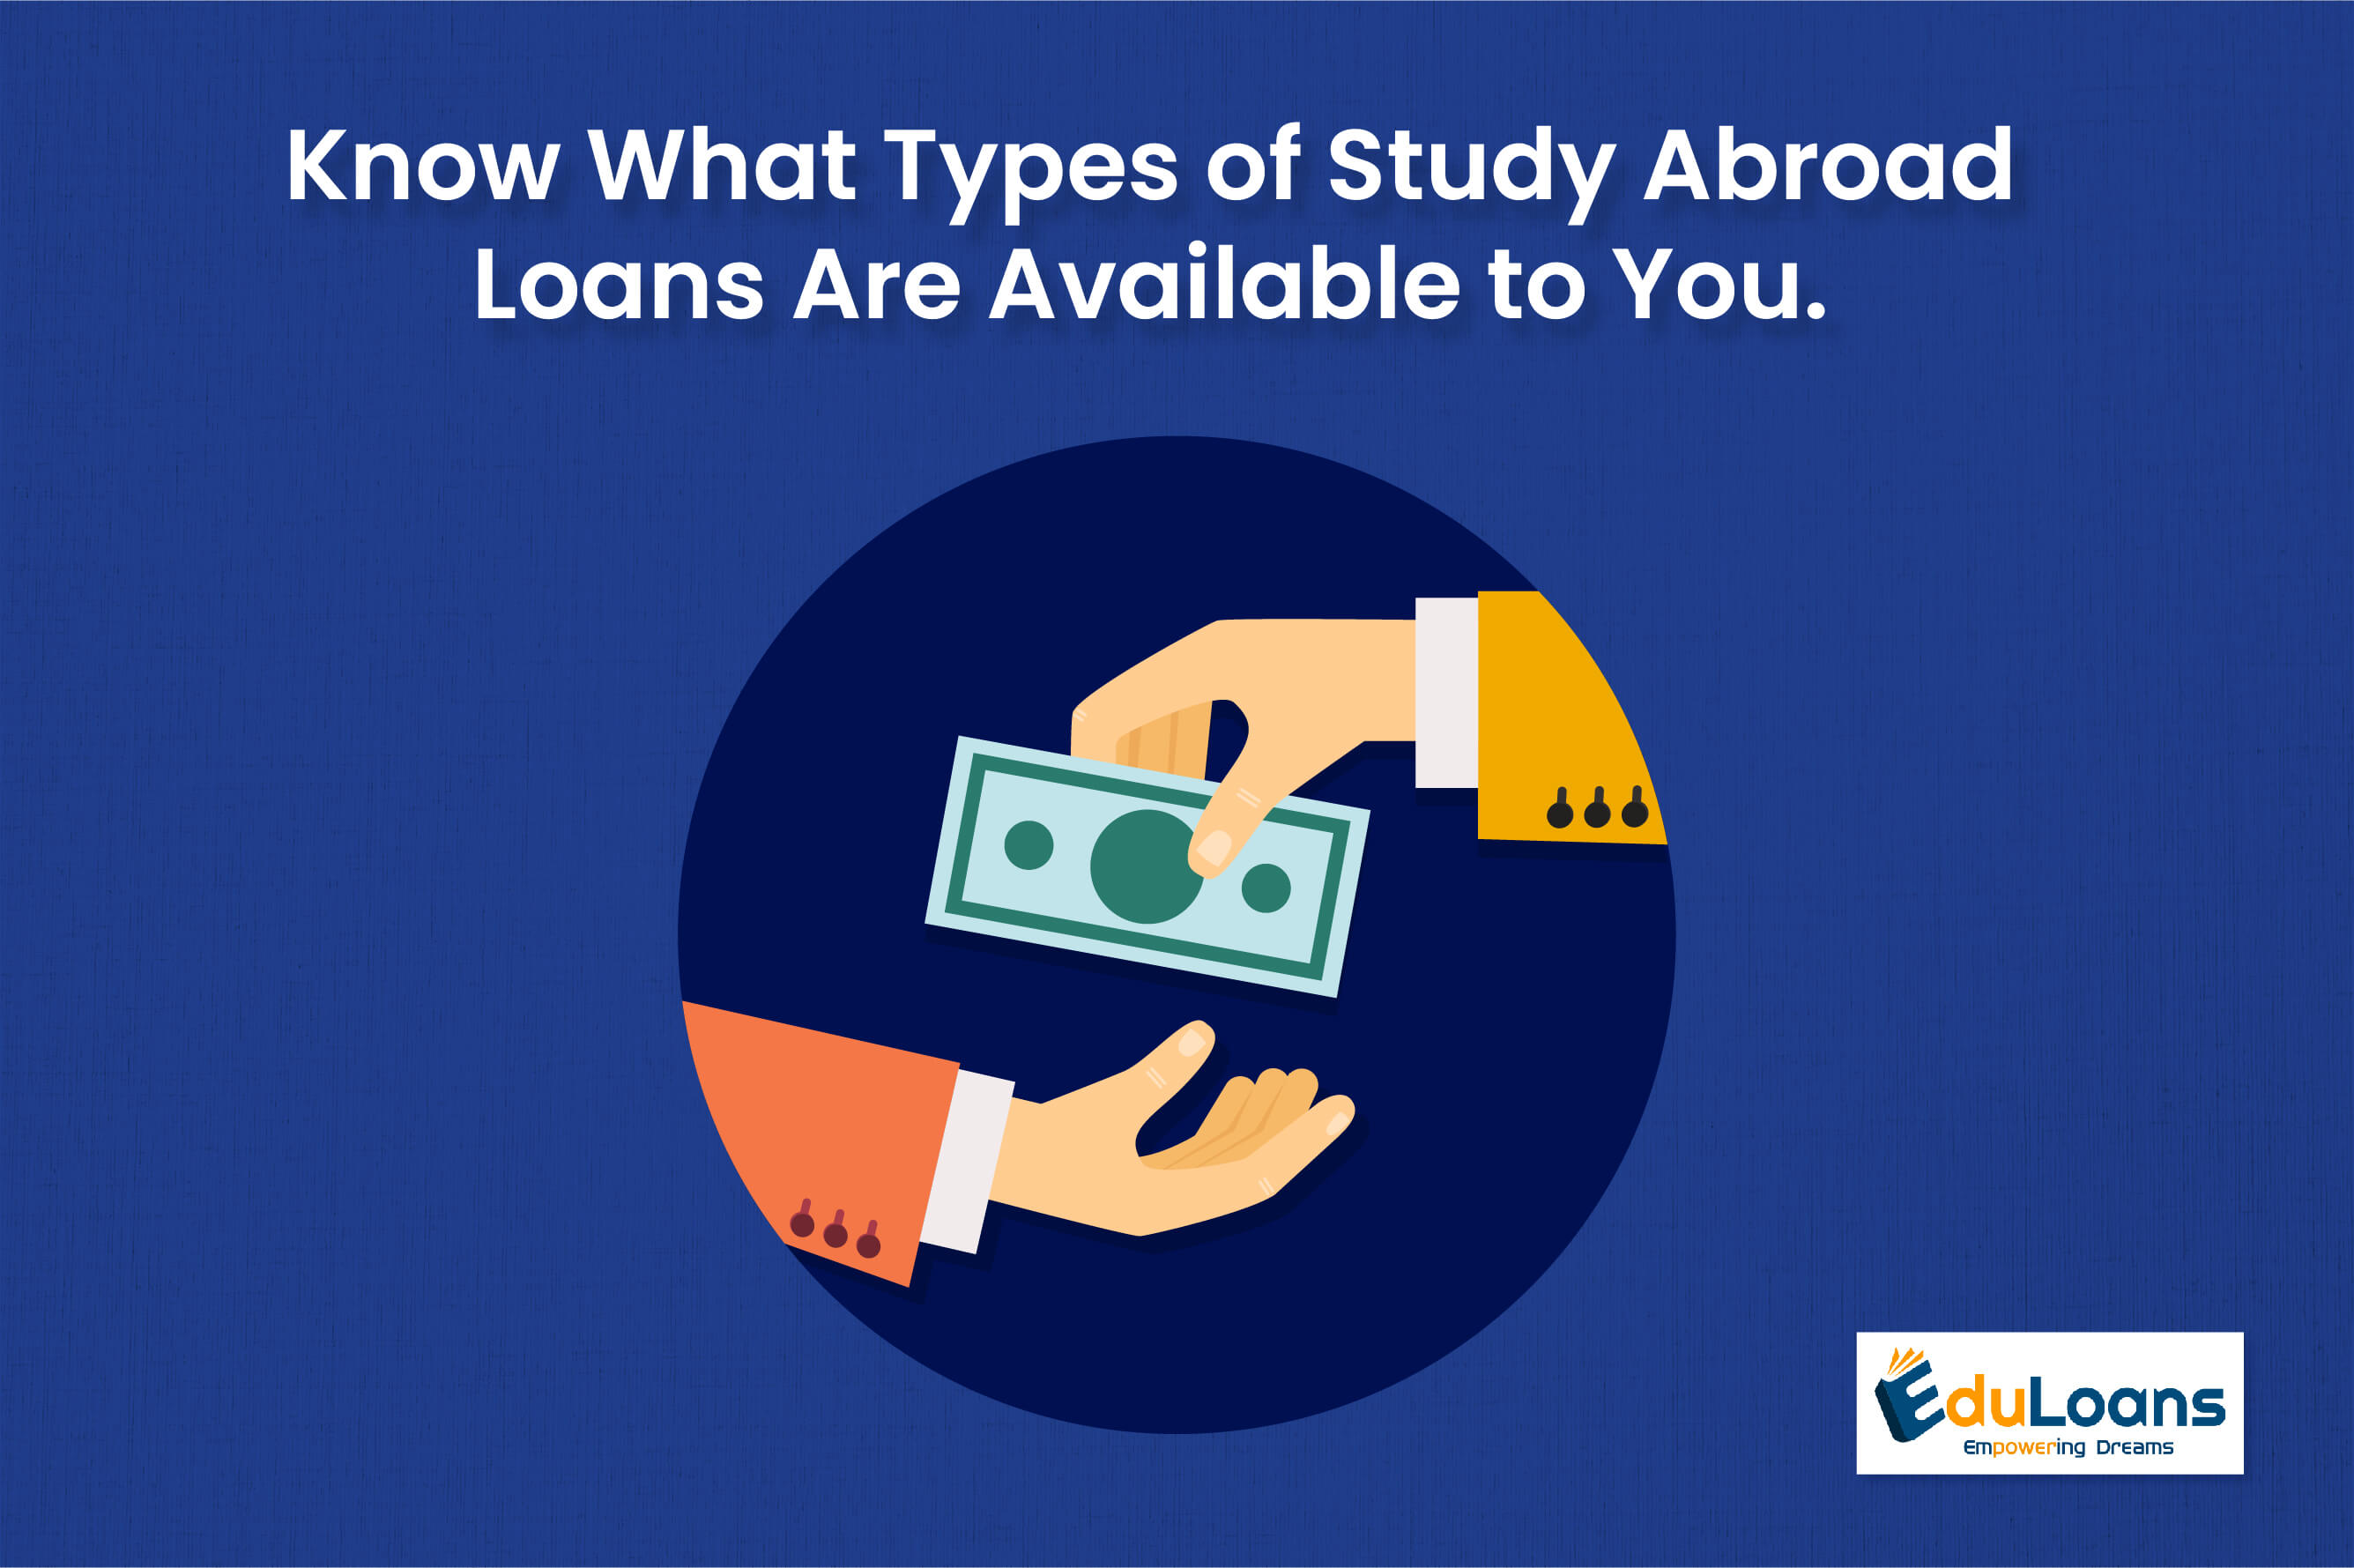 Know What Types of Study Abroad Loans Are Available to You